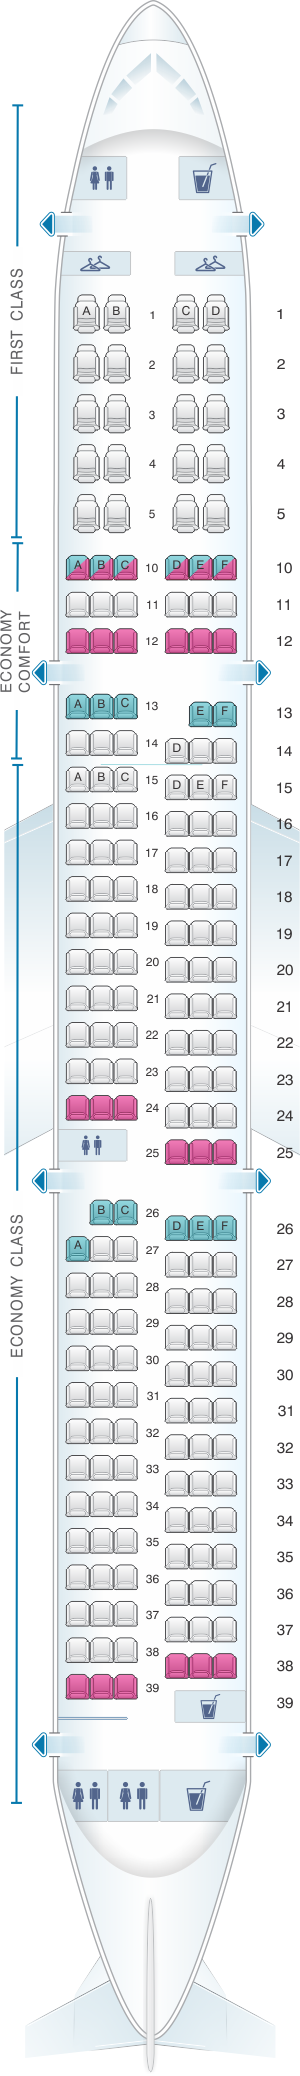 Seat map for Delta Air Lines Airbus A321